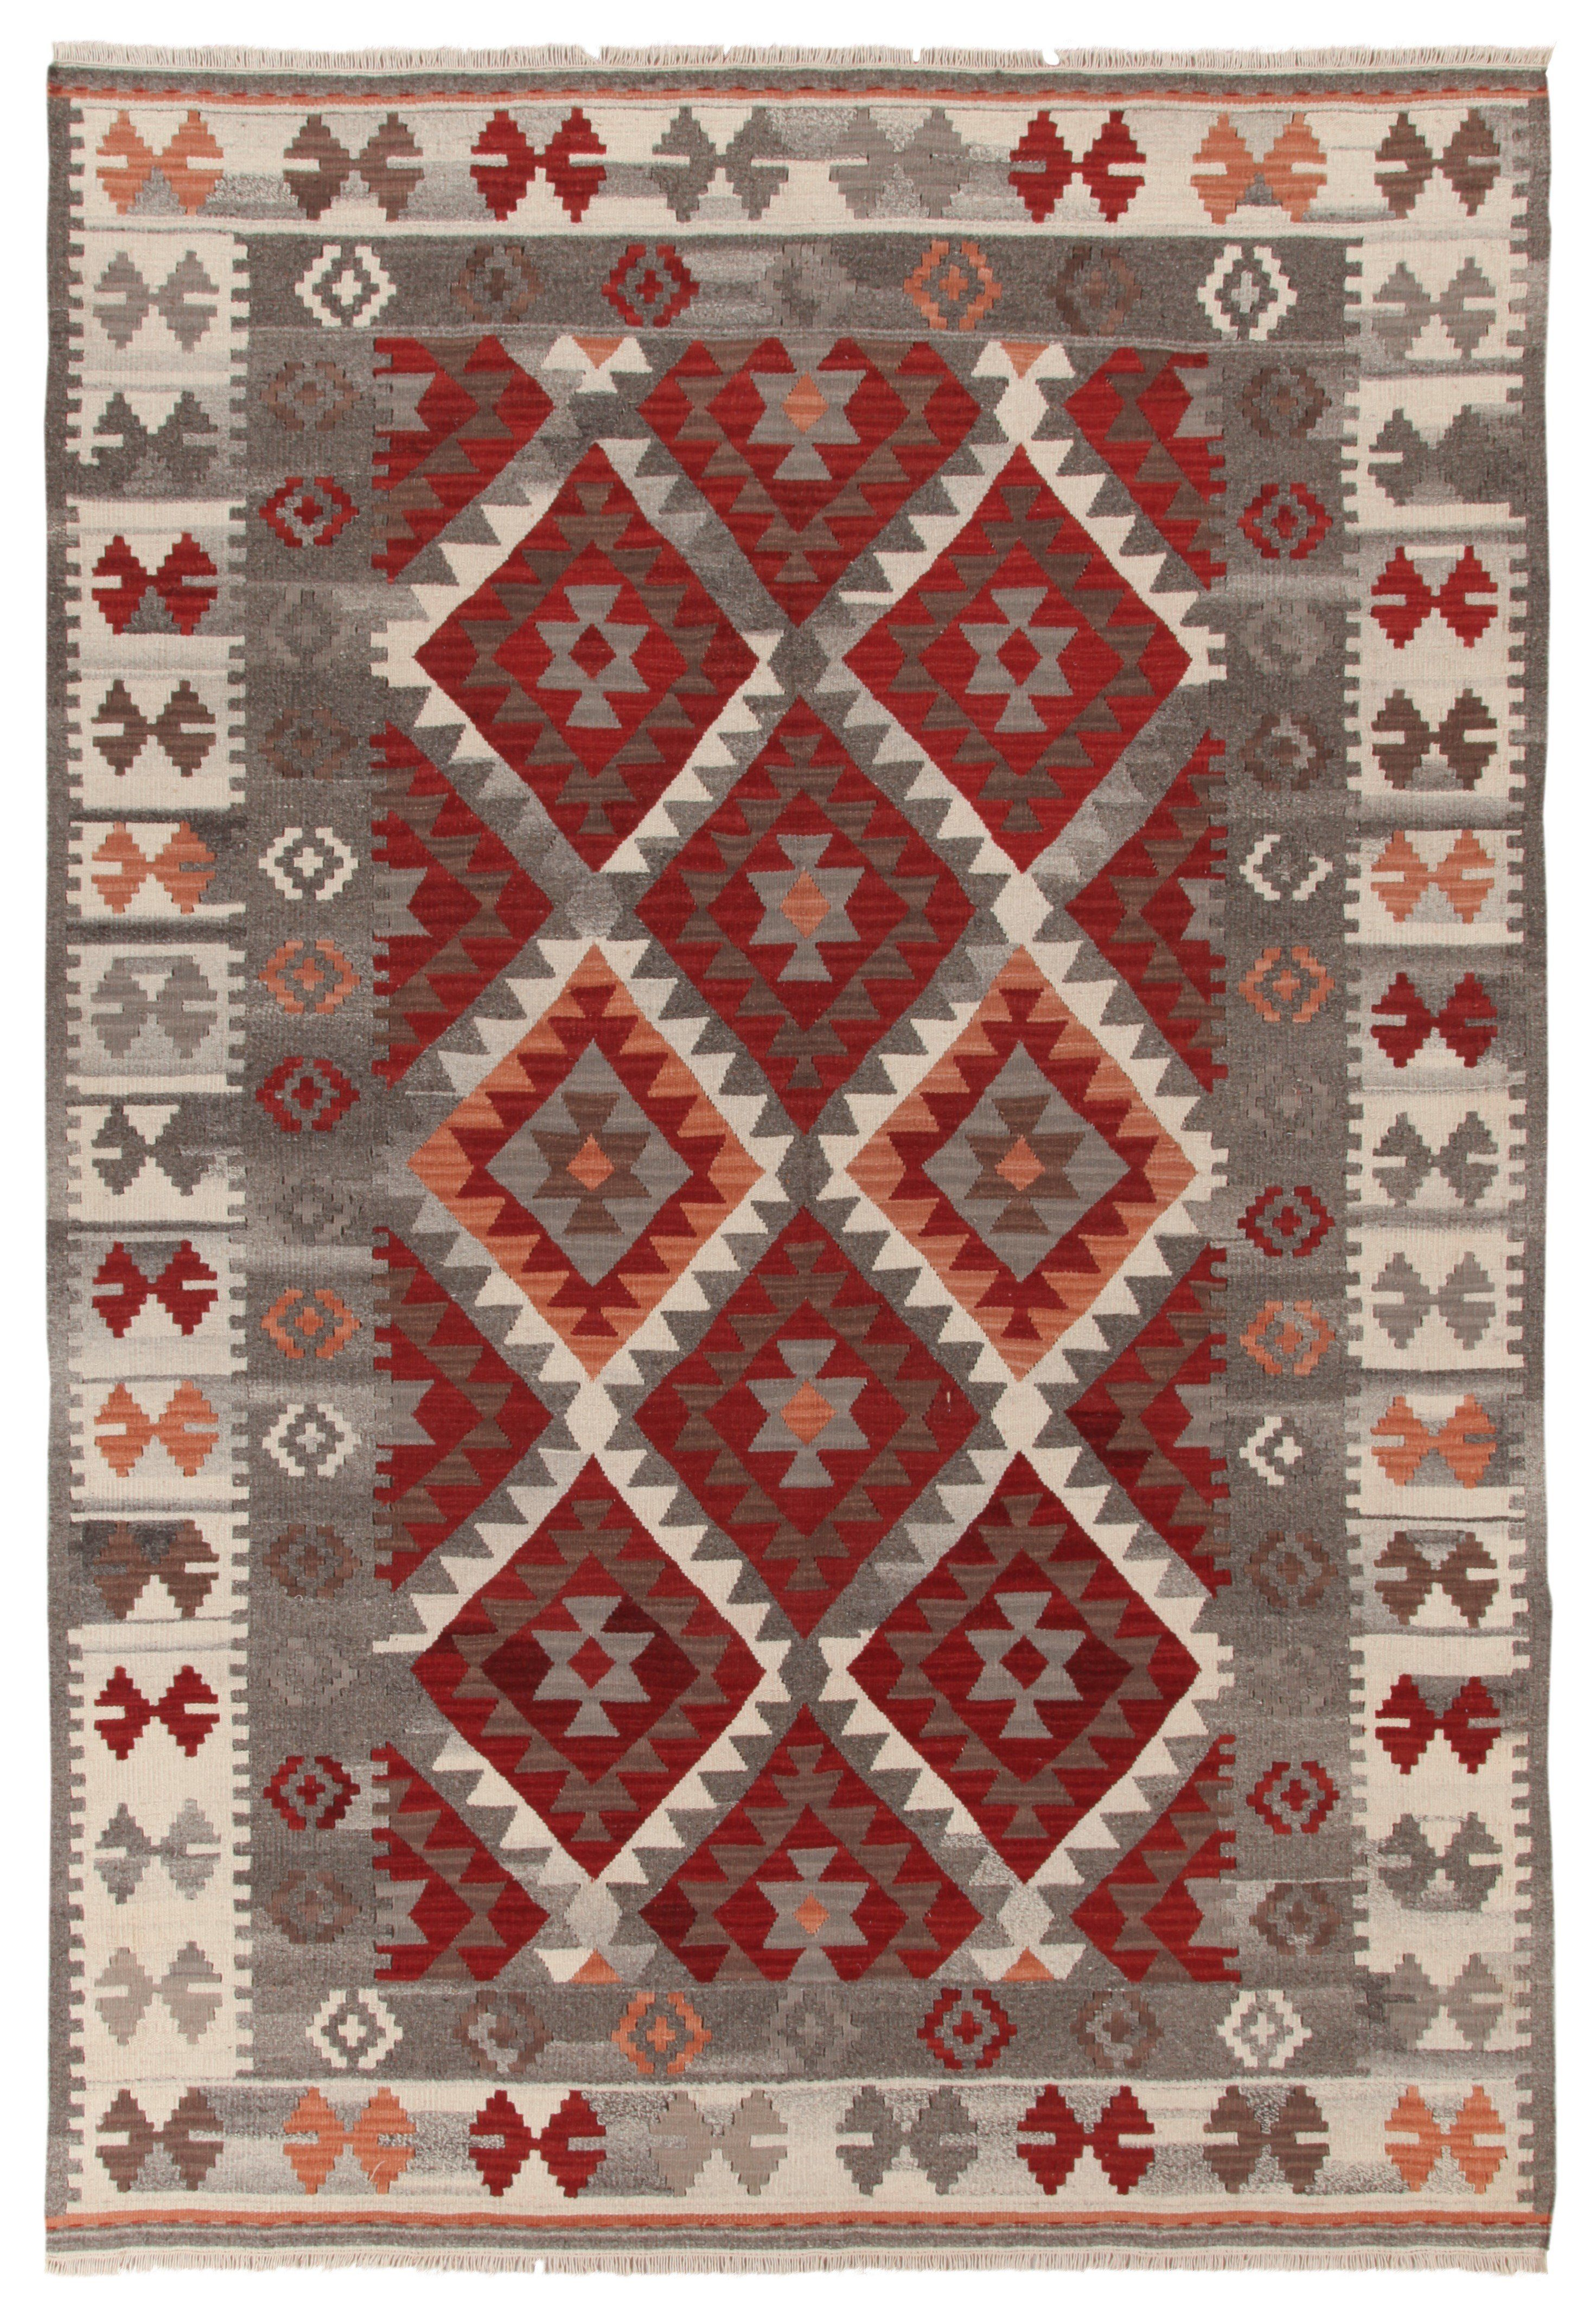 Handmade Kilim Wool Cotton Red Grey Rug